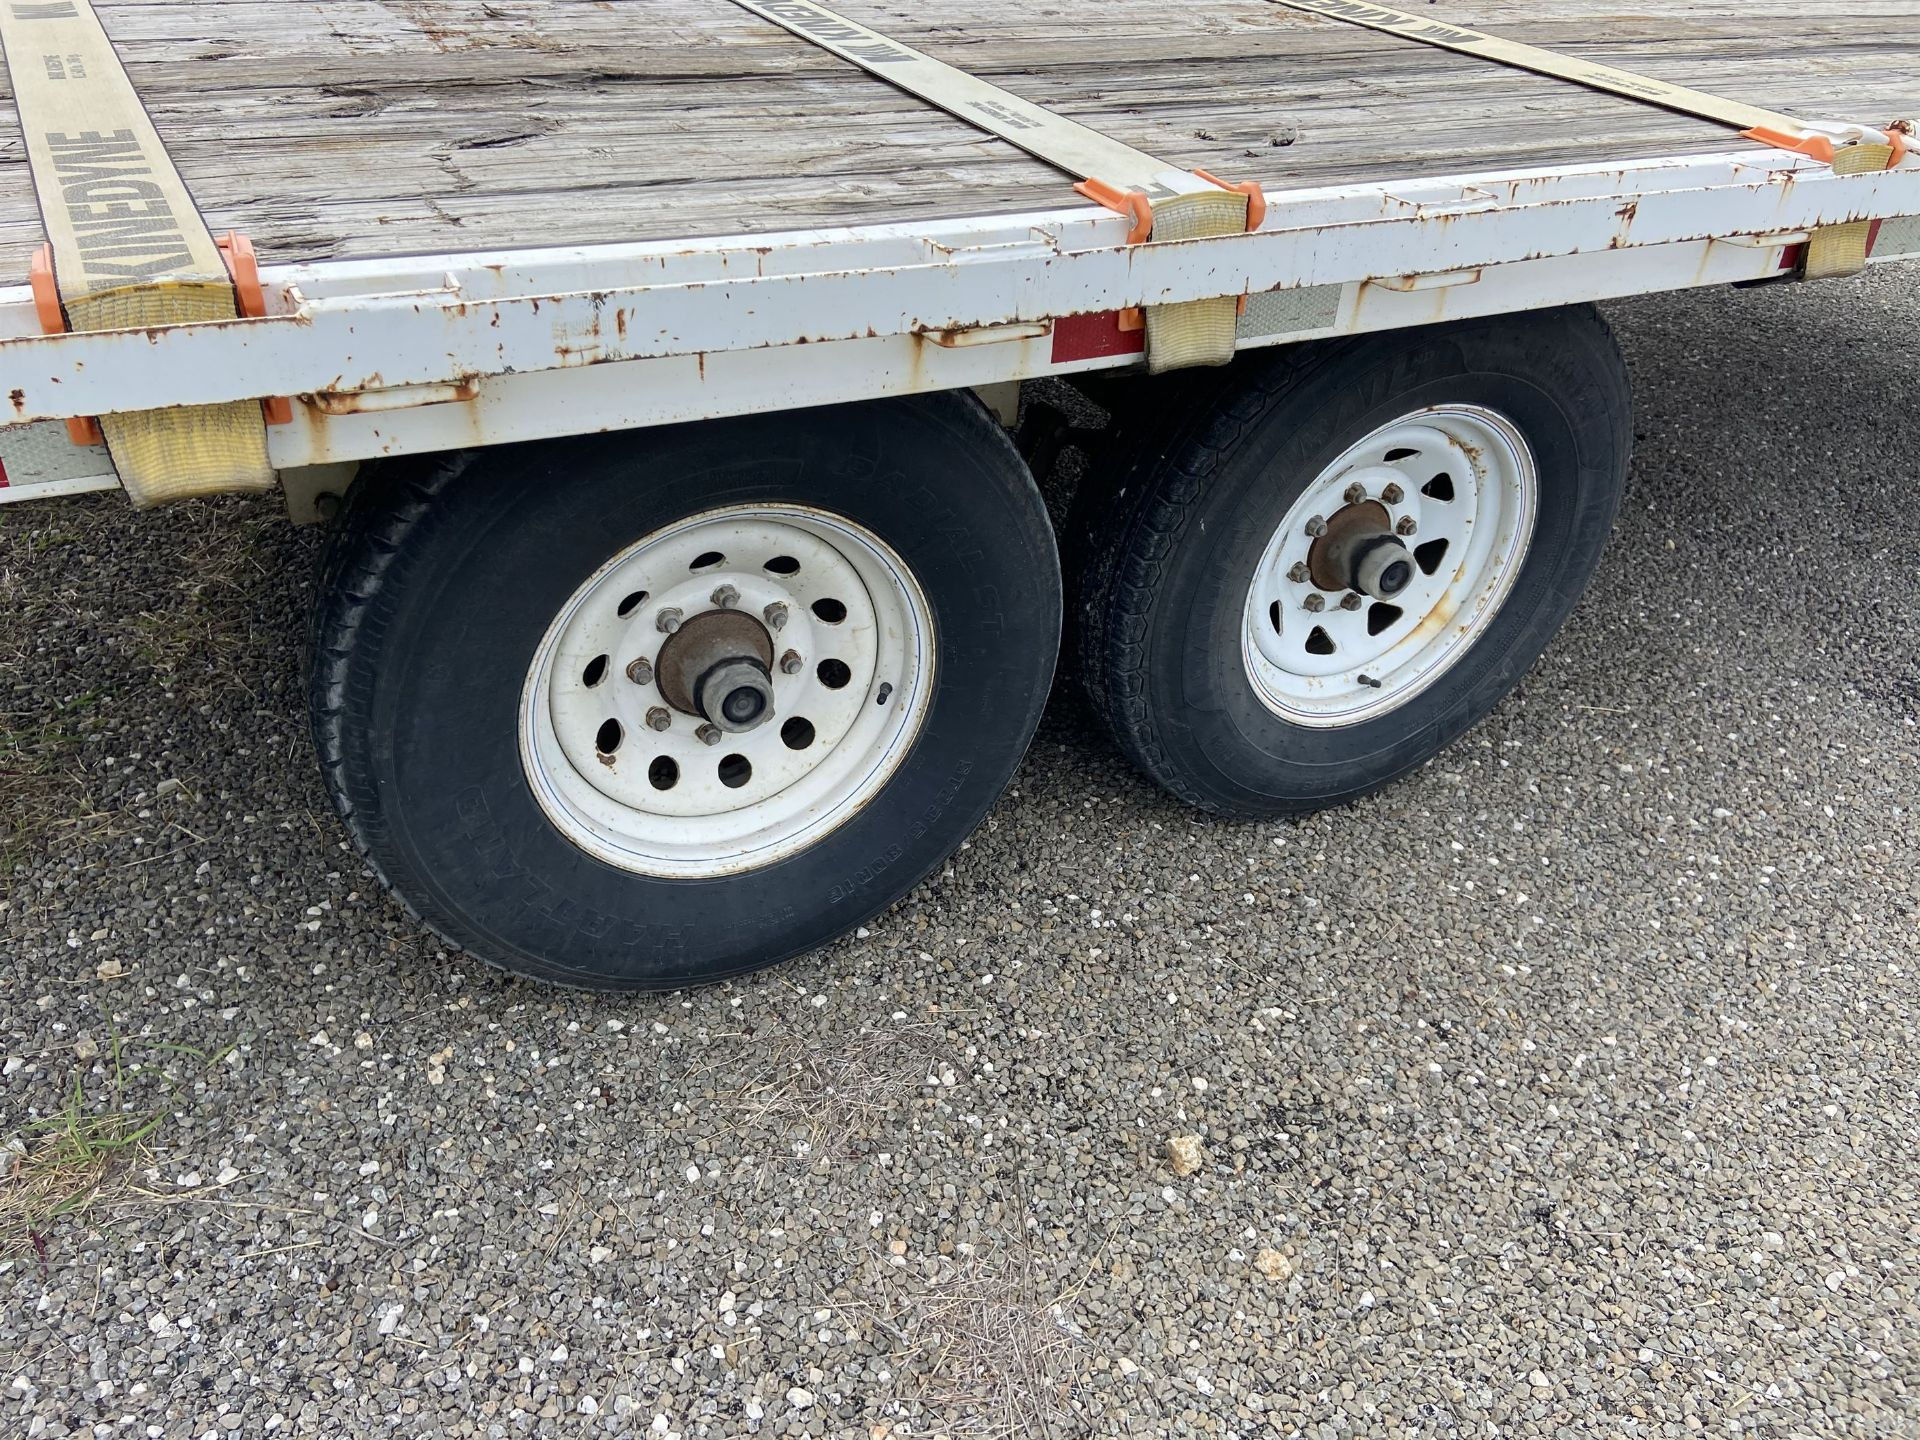 16' Bed Goose Neck trailer, 14k Axles, Built in Straps. (Title Not Available) - Image 3 of 5